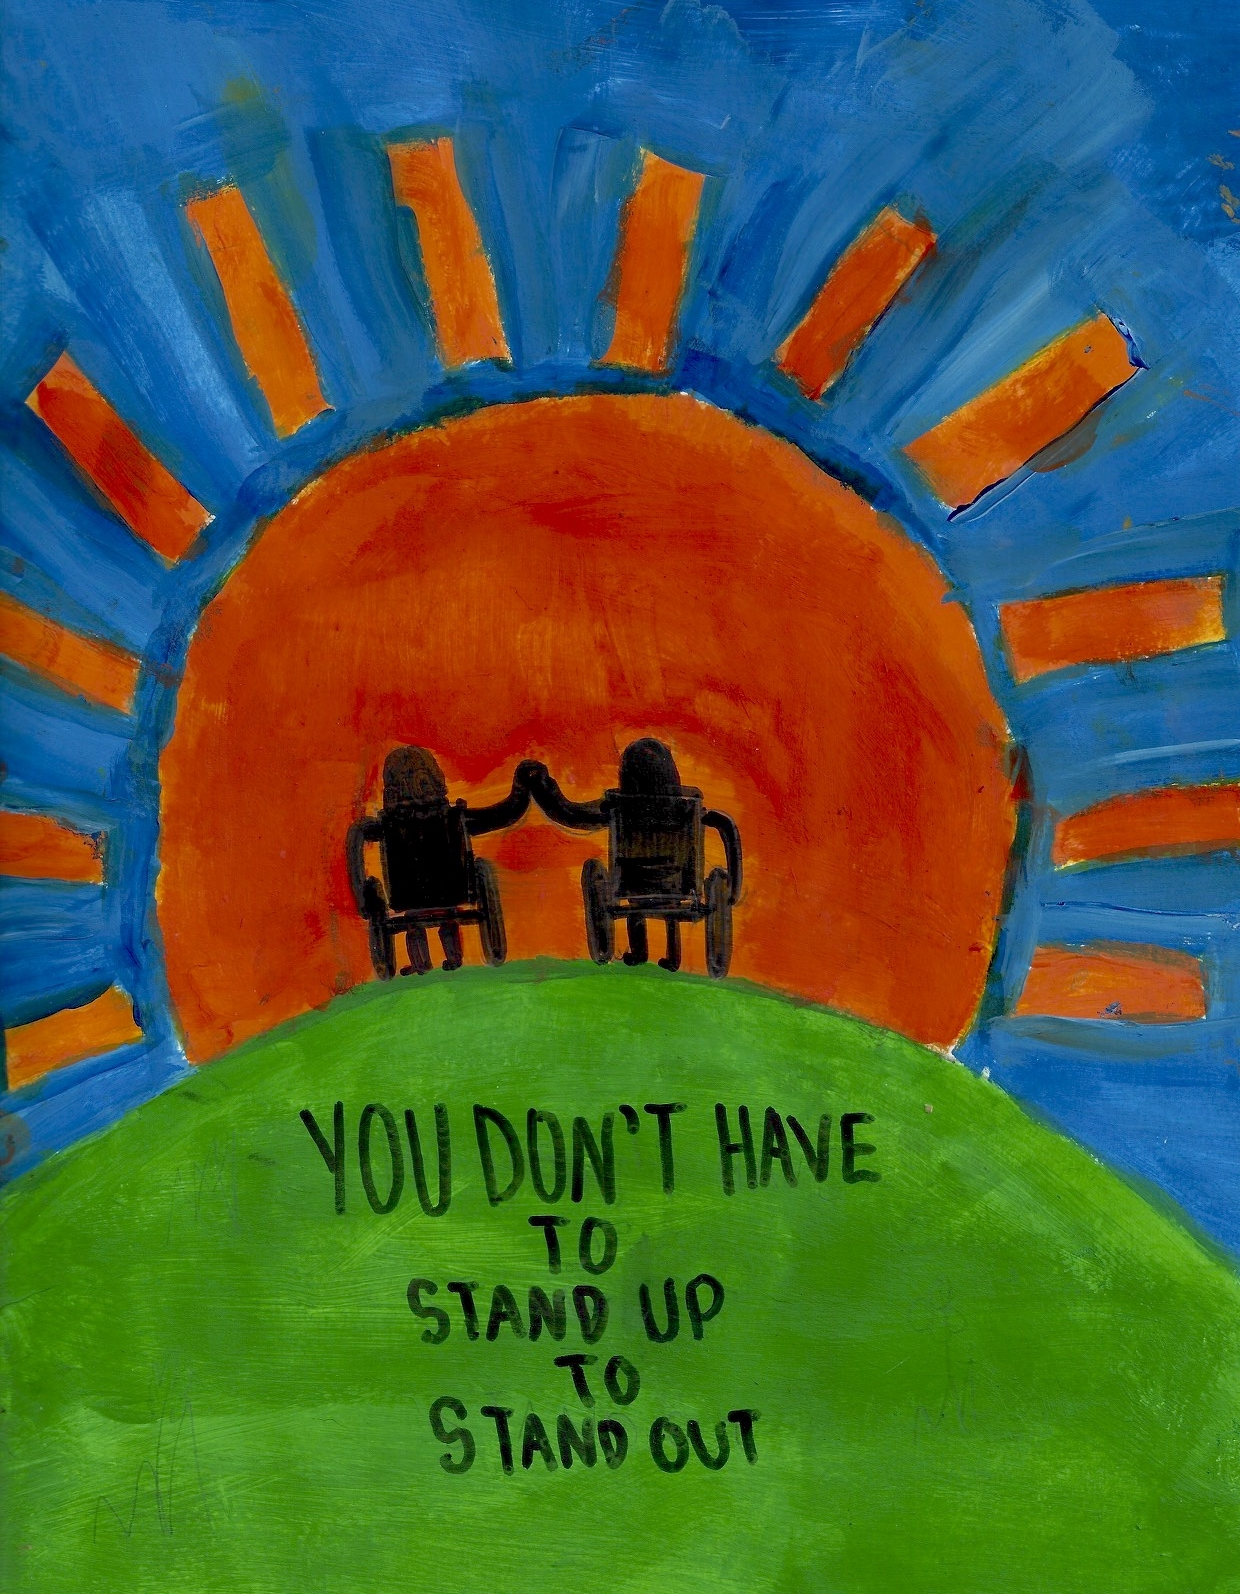 004 - STAND OUT by Tasha Sudofsky (age 13) in Marion, Massachusetts, USA